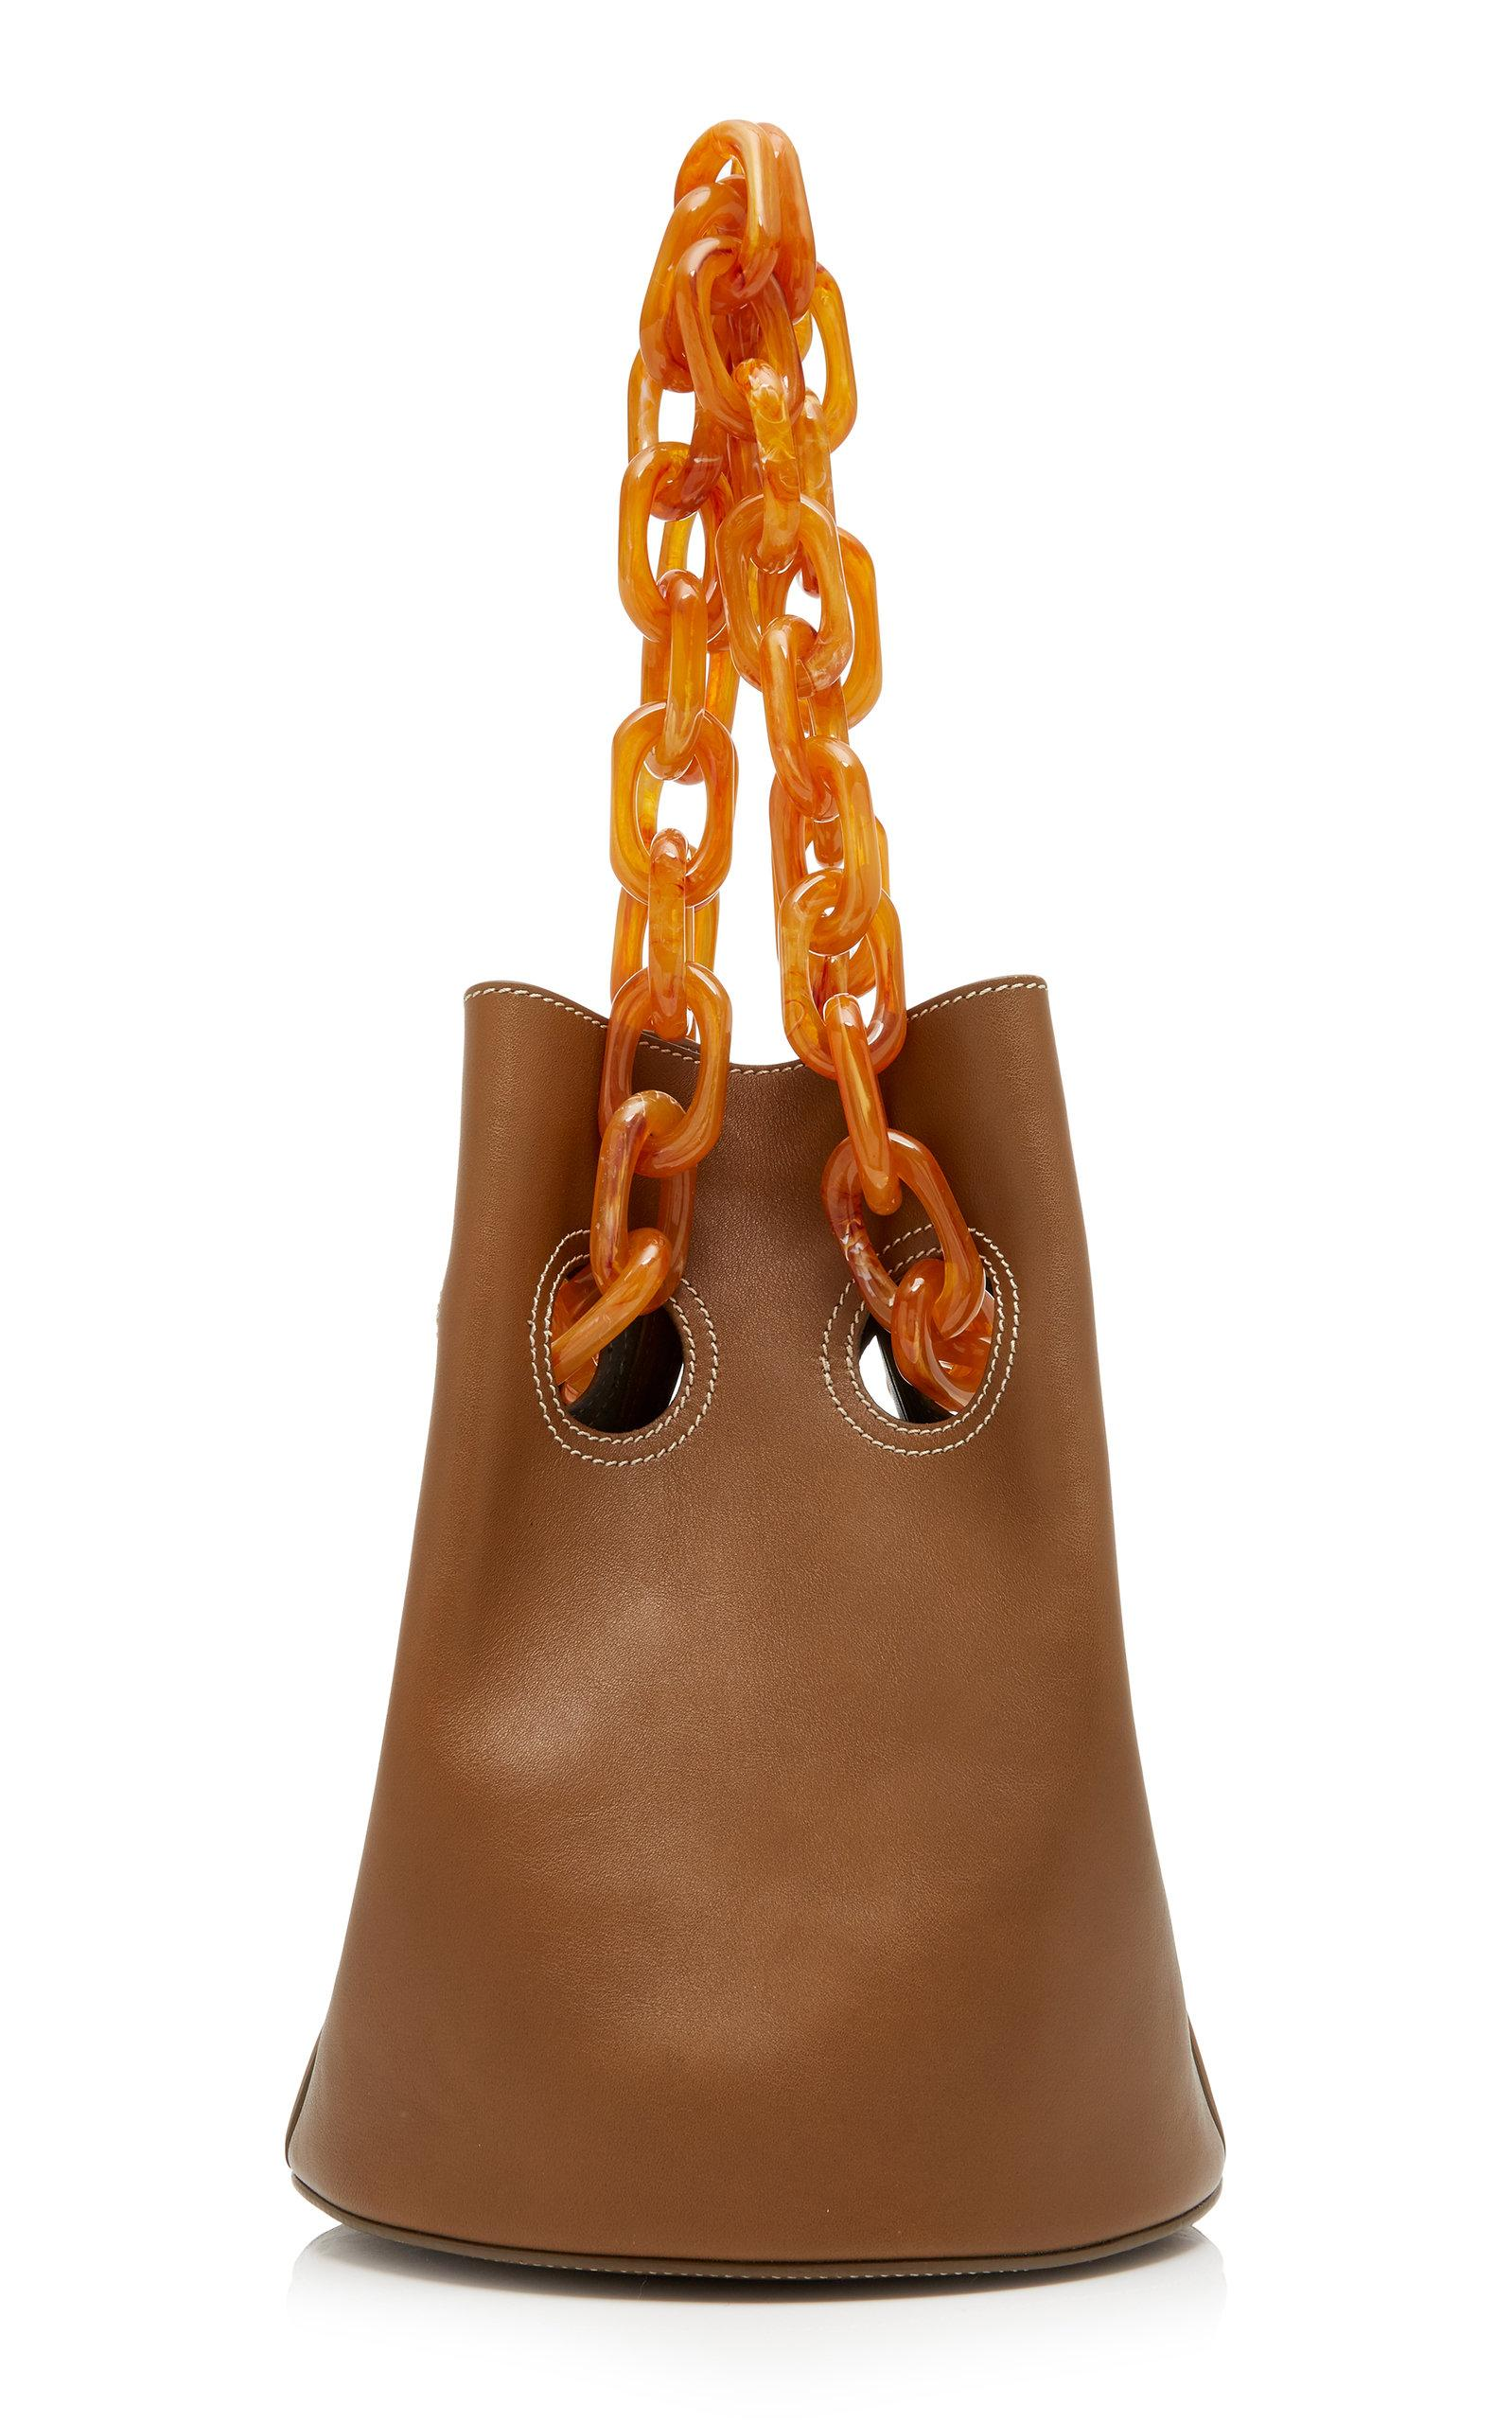 Trademark Goodall Bucket Bag With Resin Chain In Brown